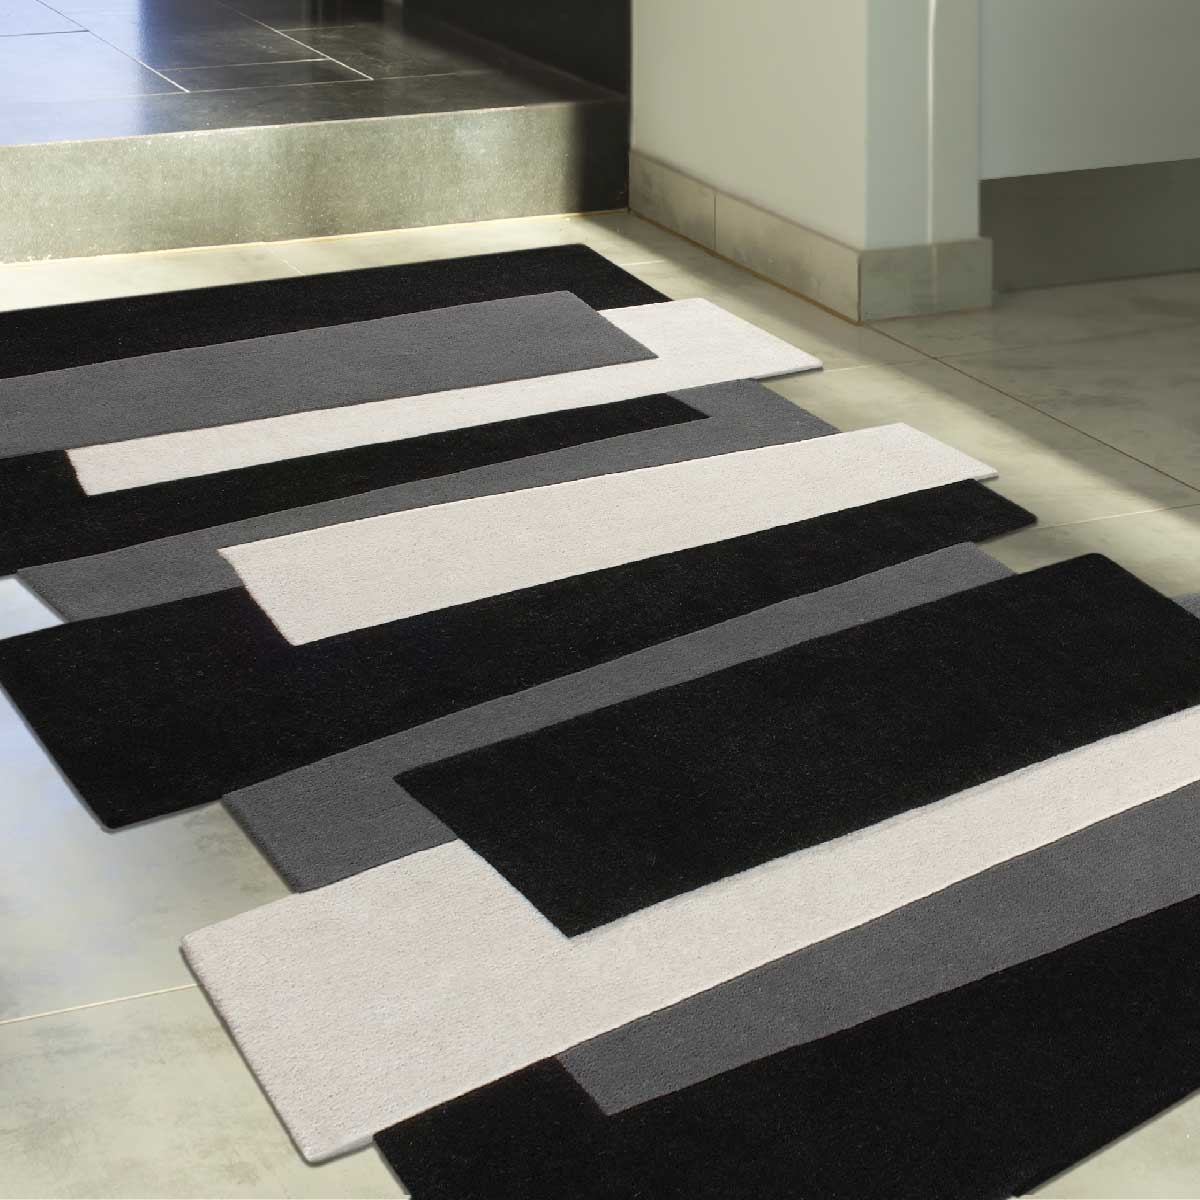 tapis salle de bain original tapis salle de bain original with tapis salle de bain original. Black Bedroom Furniture Sets. Home Design Ideas